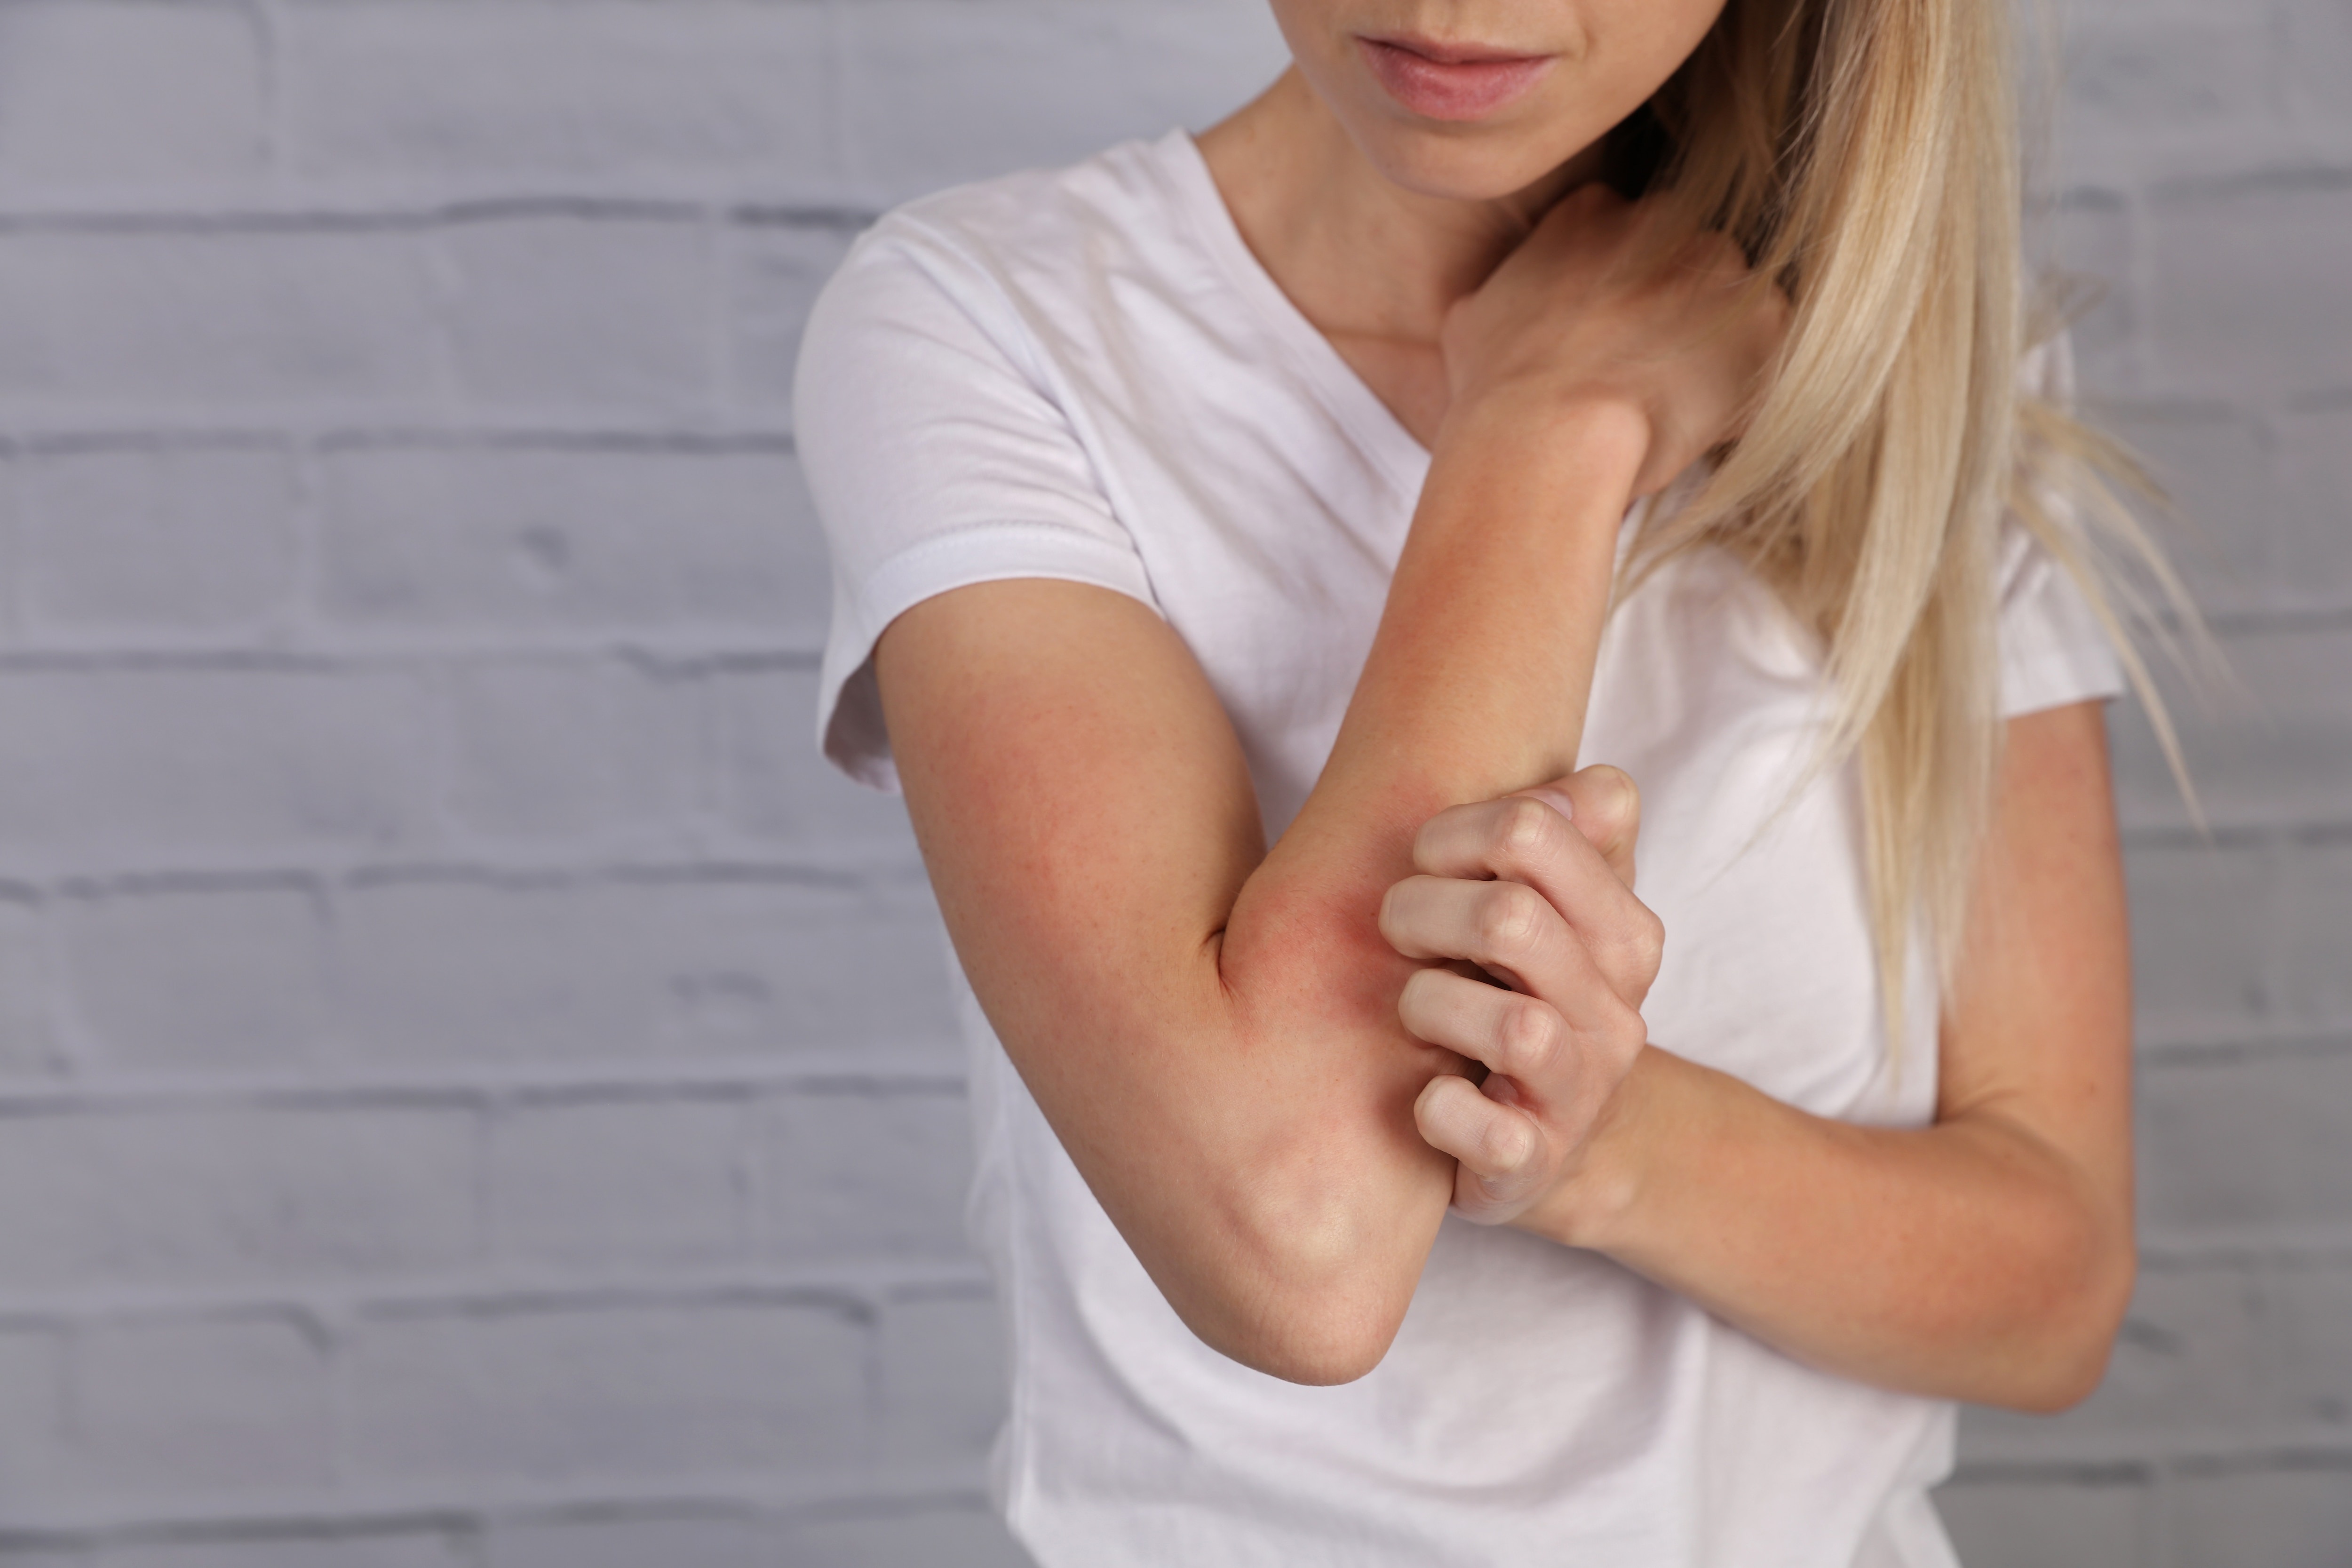 Eczema vs dermatitis Q&A: What's really causing your dry, itchy skin?